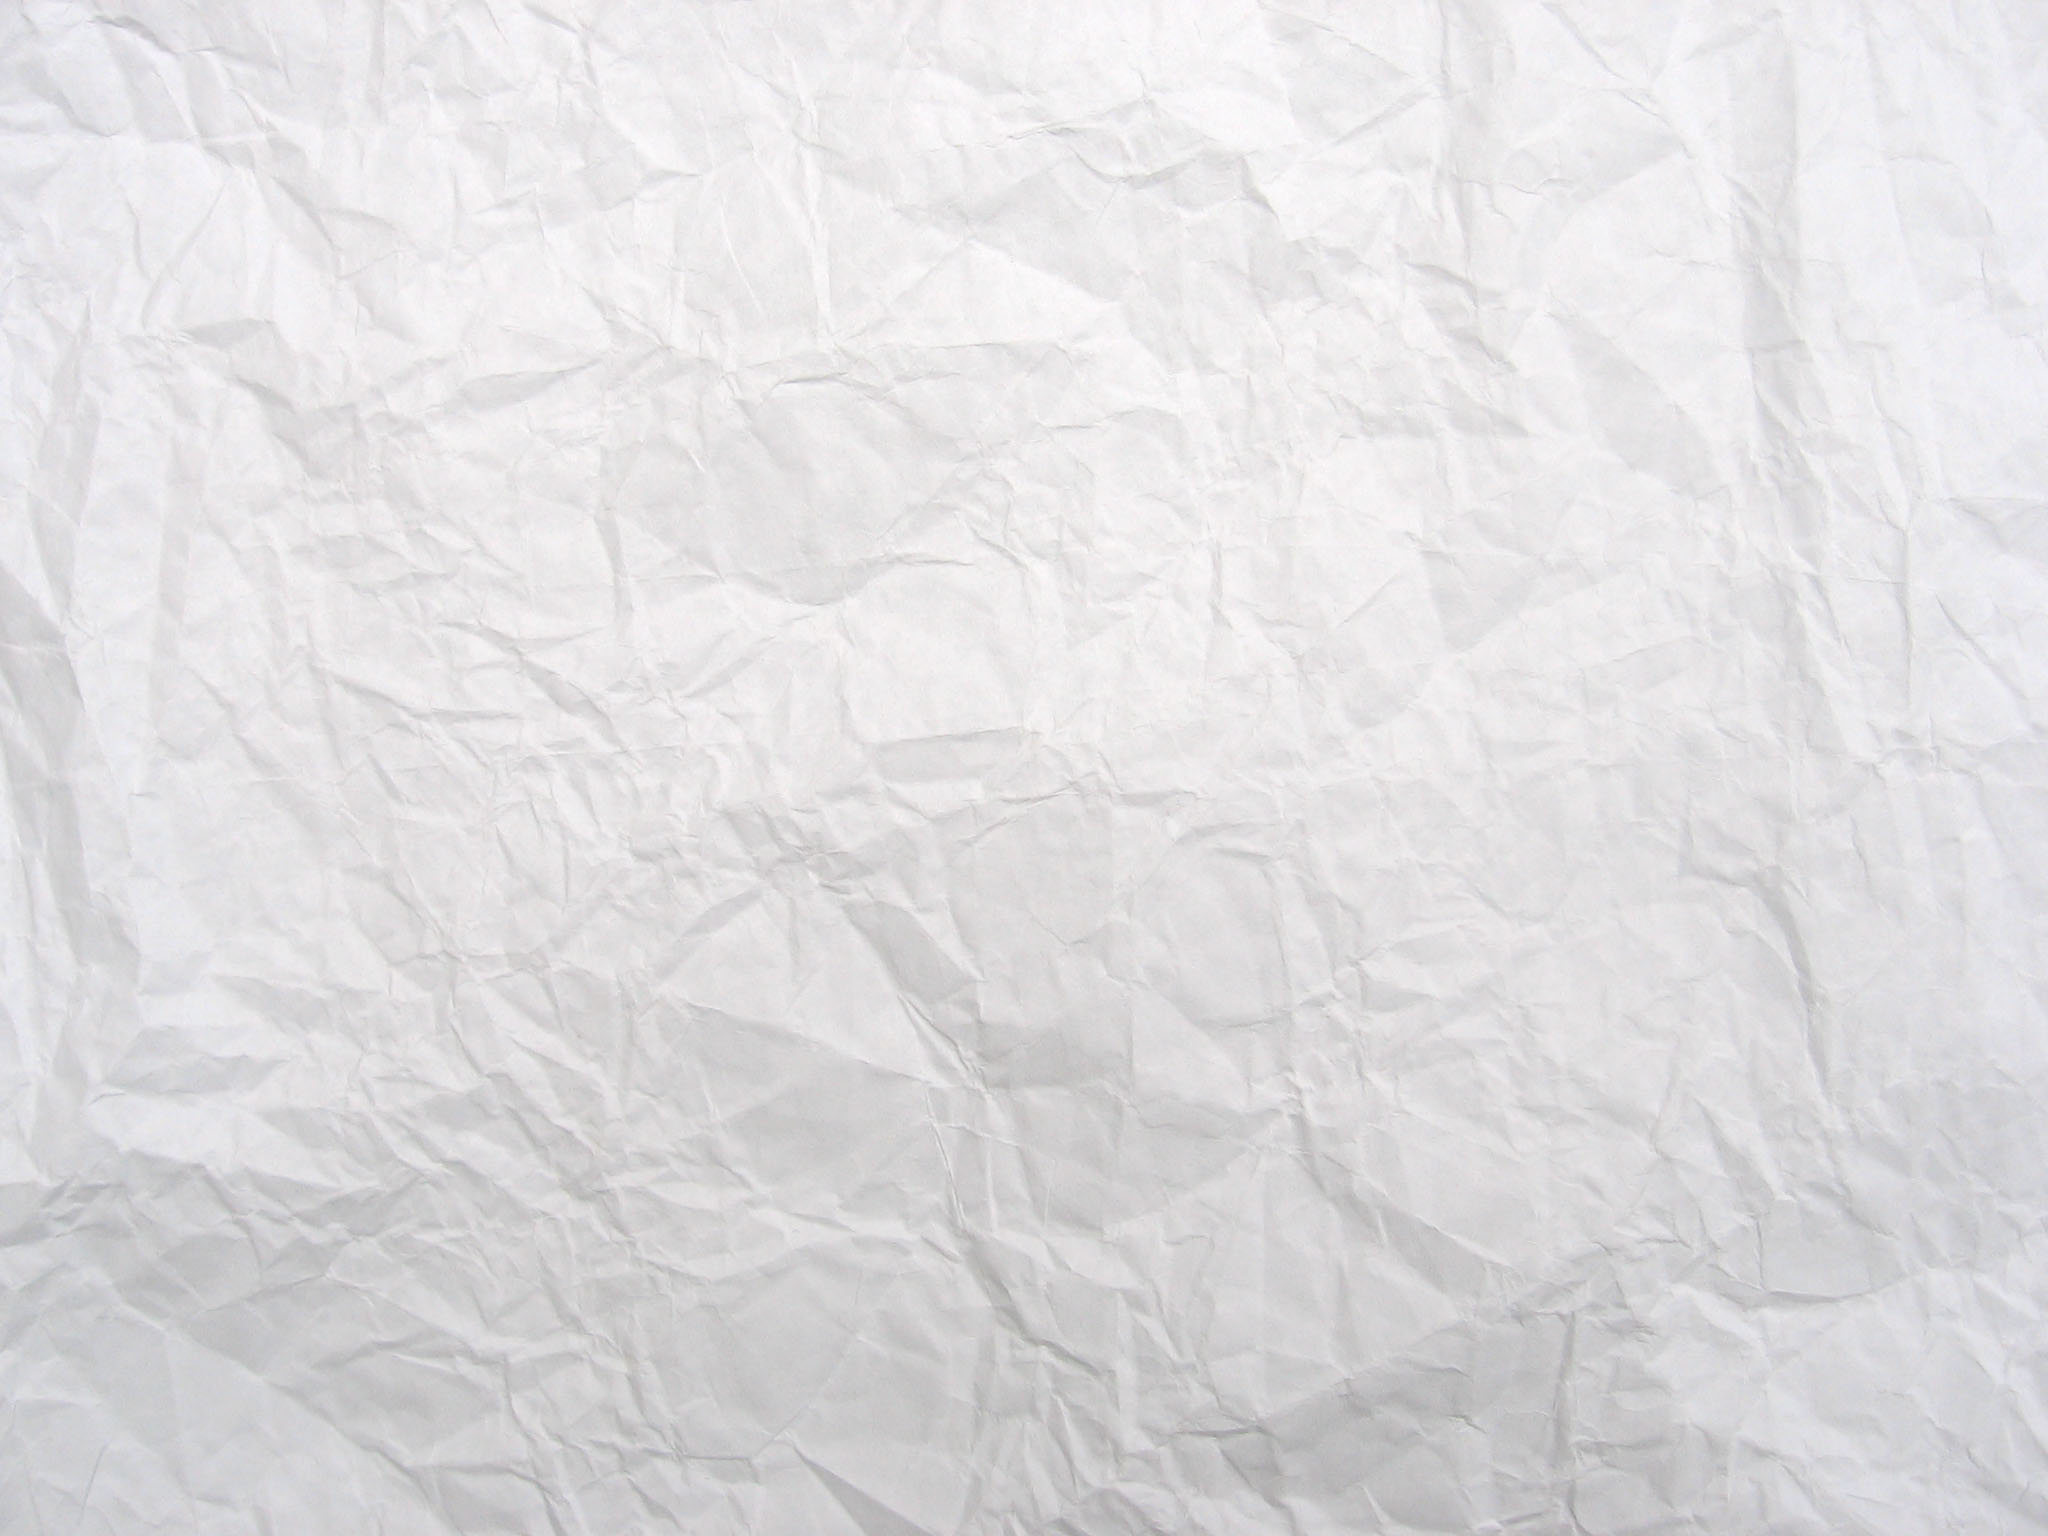 Download Crumpled White Paper Texture Melemel Jpeg Wallpaper 2048x1536 2048x1536